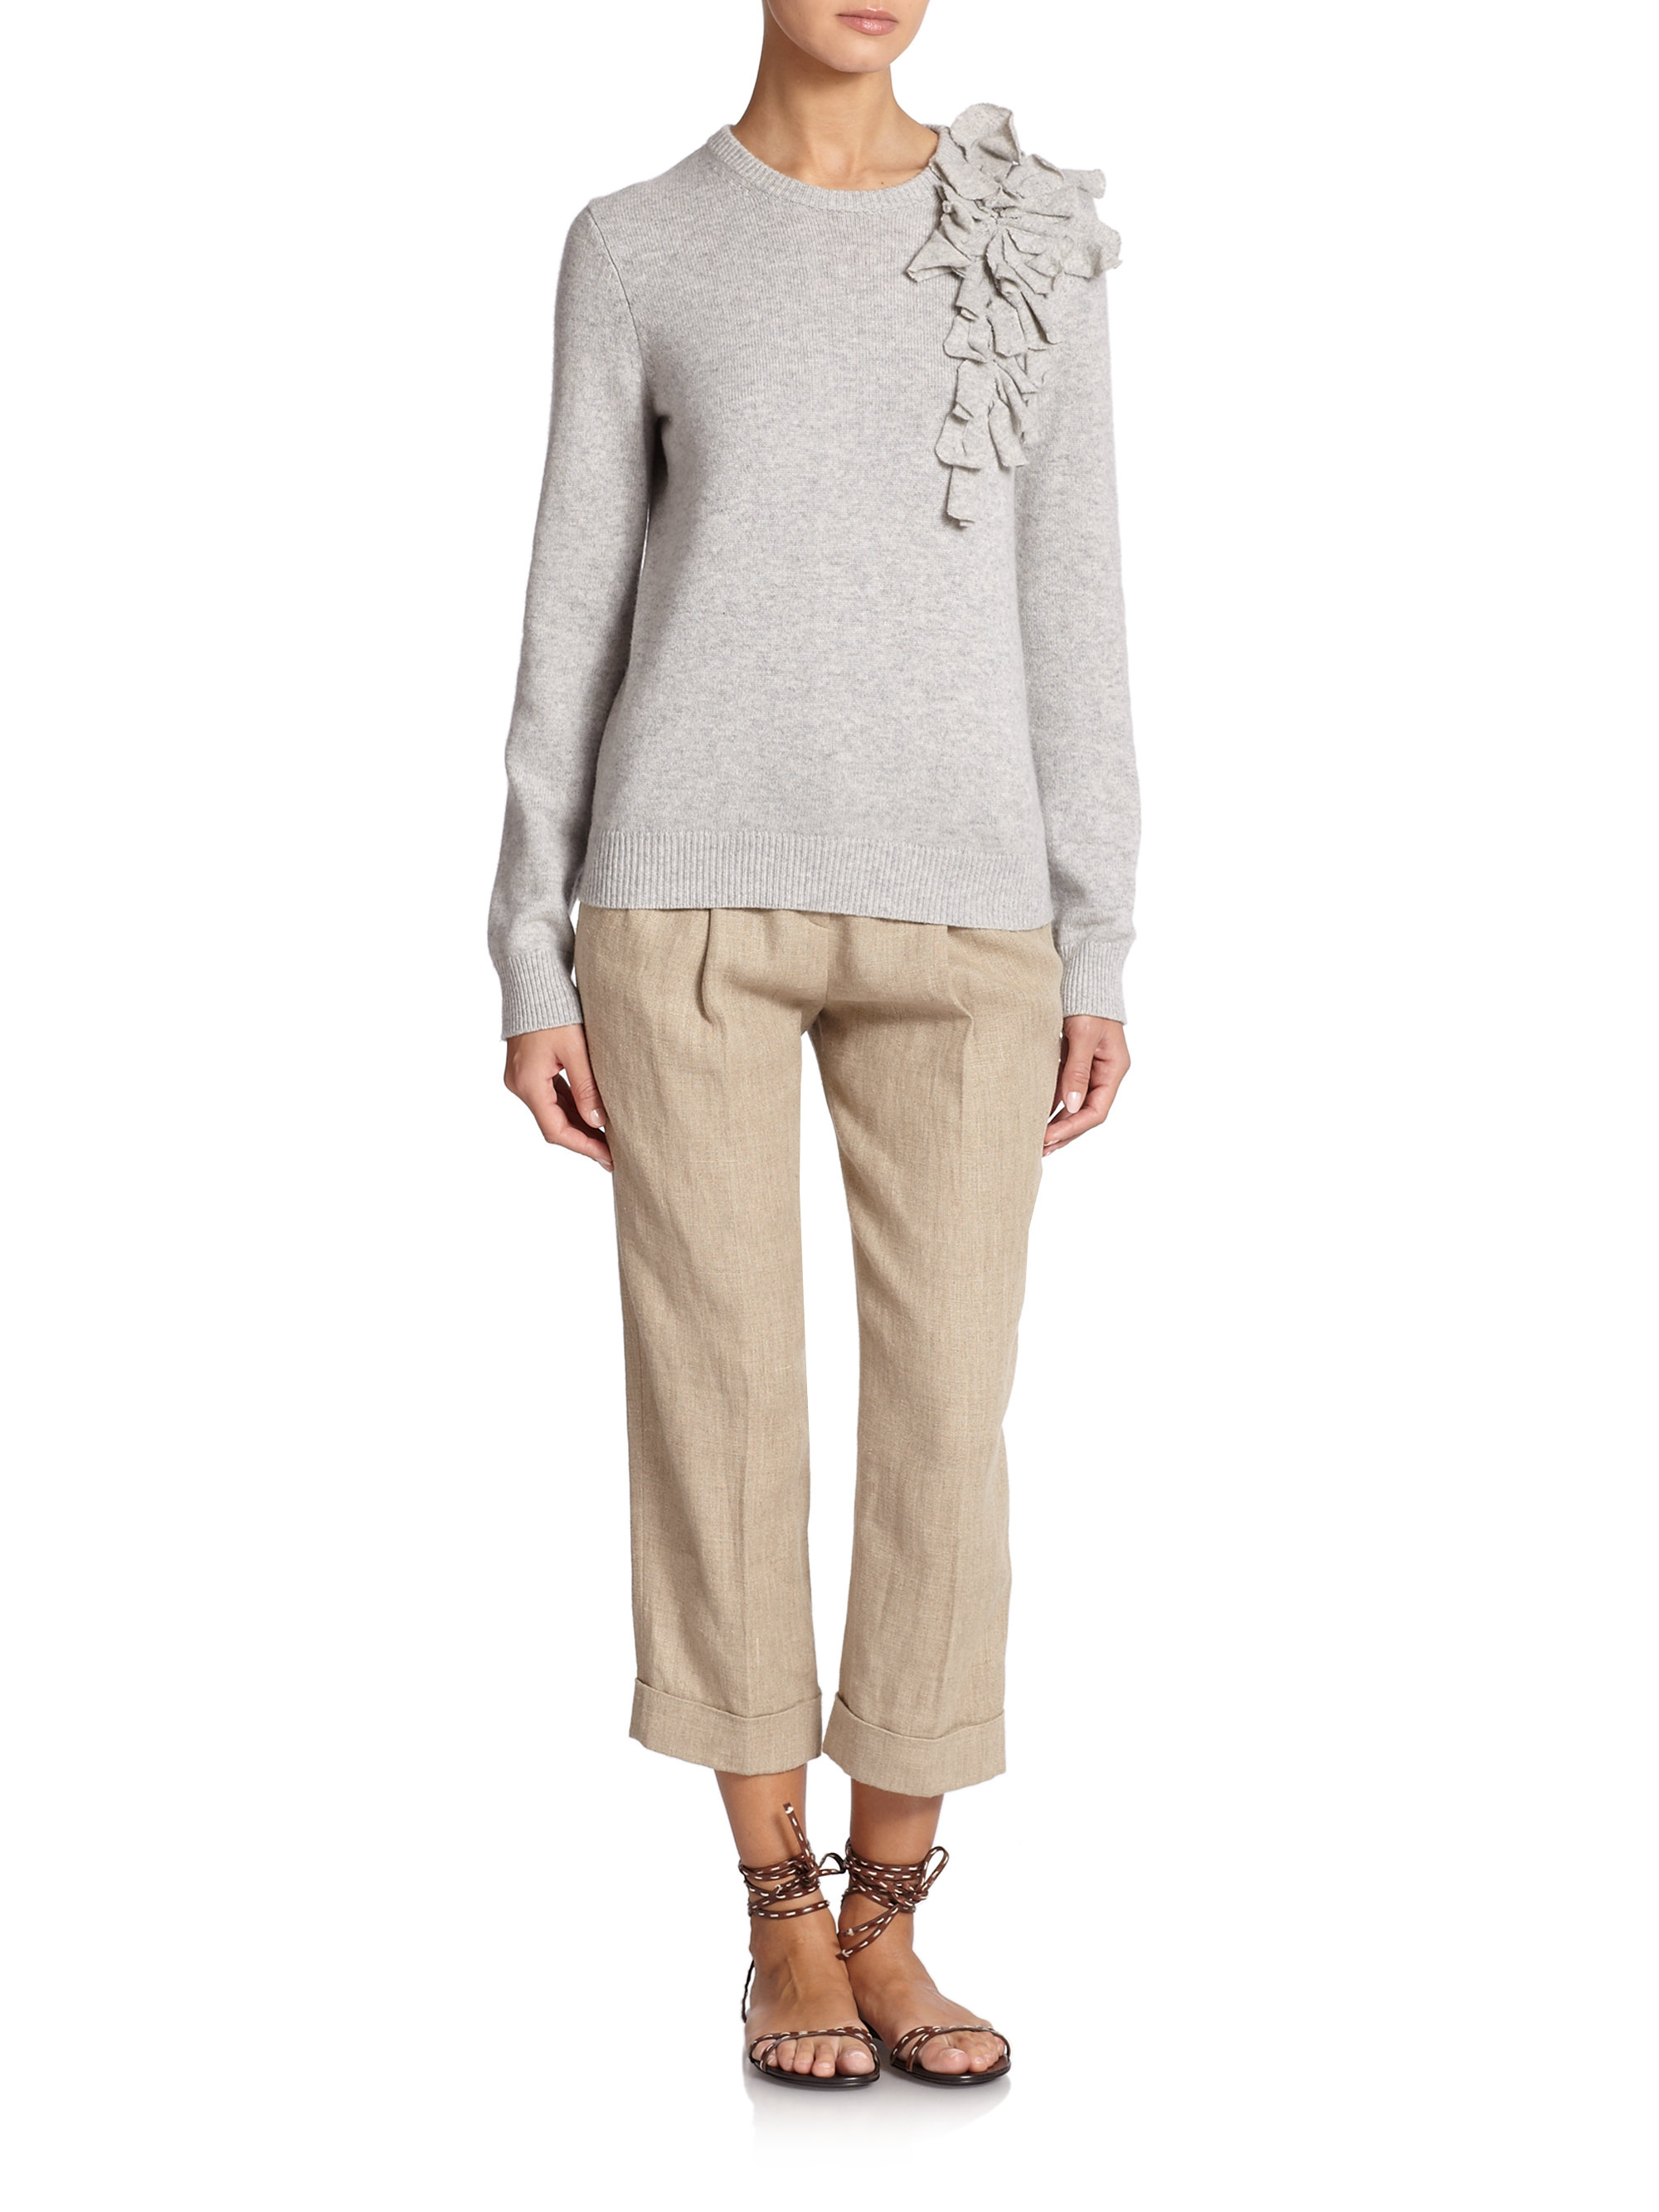 lyst michael kors cashmere corsage sweater in gray. Black Bedroom Furniture Sets. Home Design Ideas